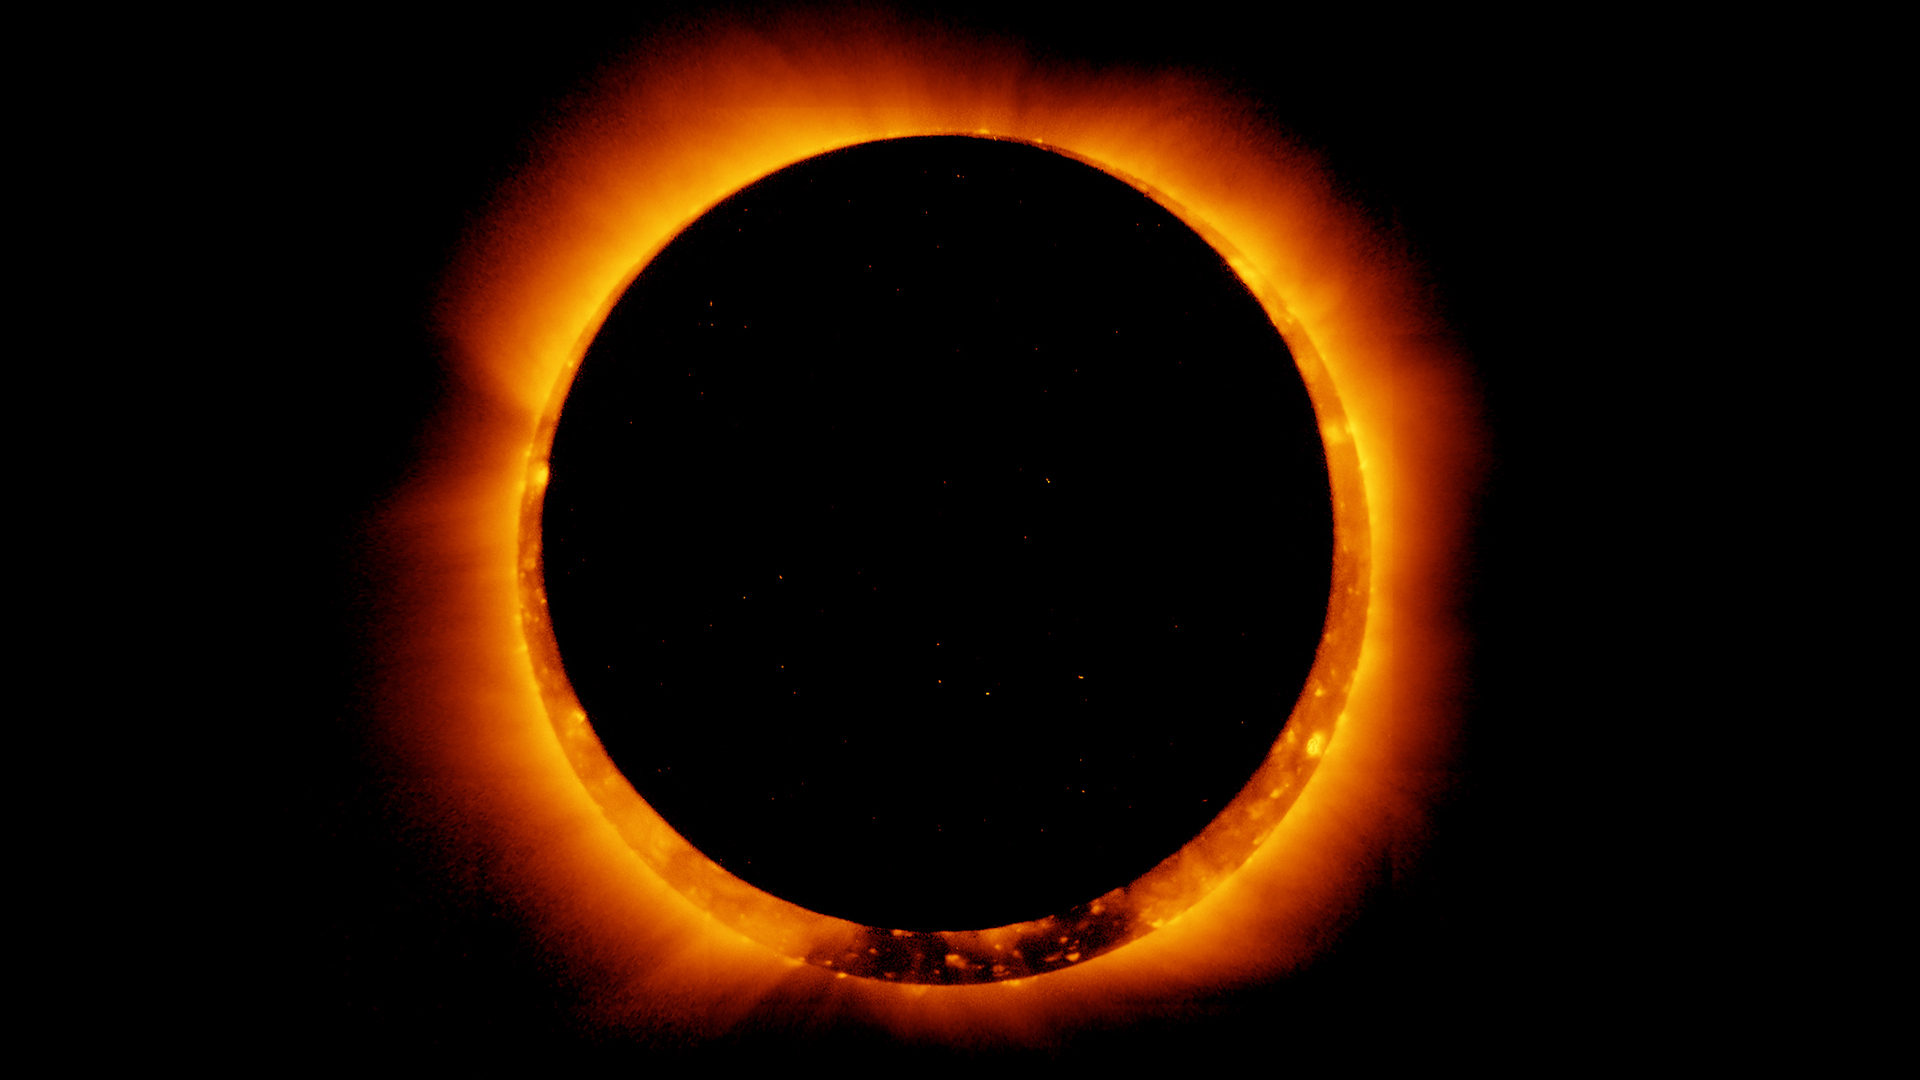 This annular solar eclipse was captured by Japan's Hinode satellite on January 4, 2011.